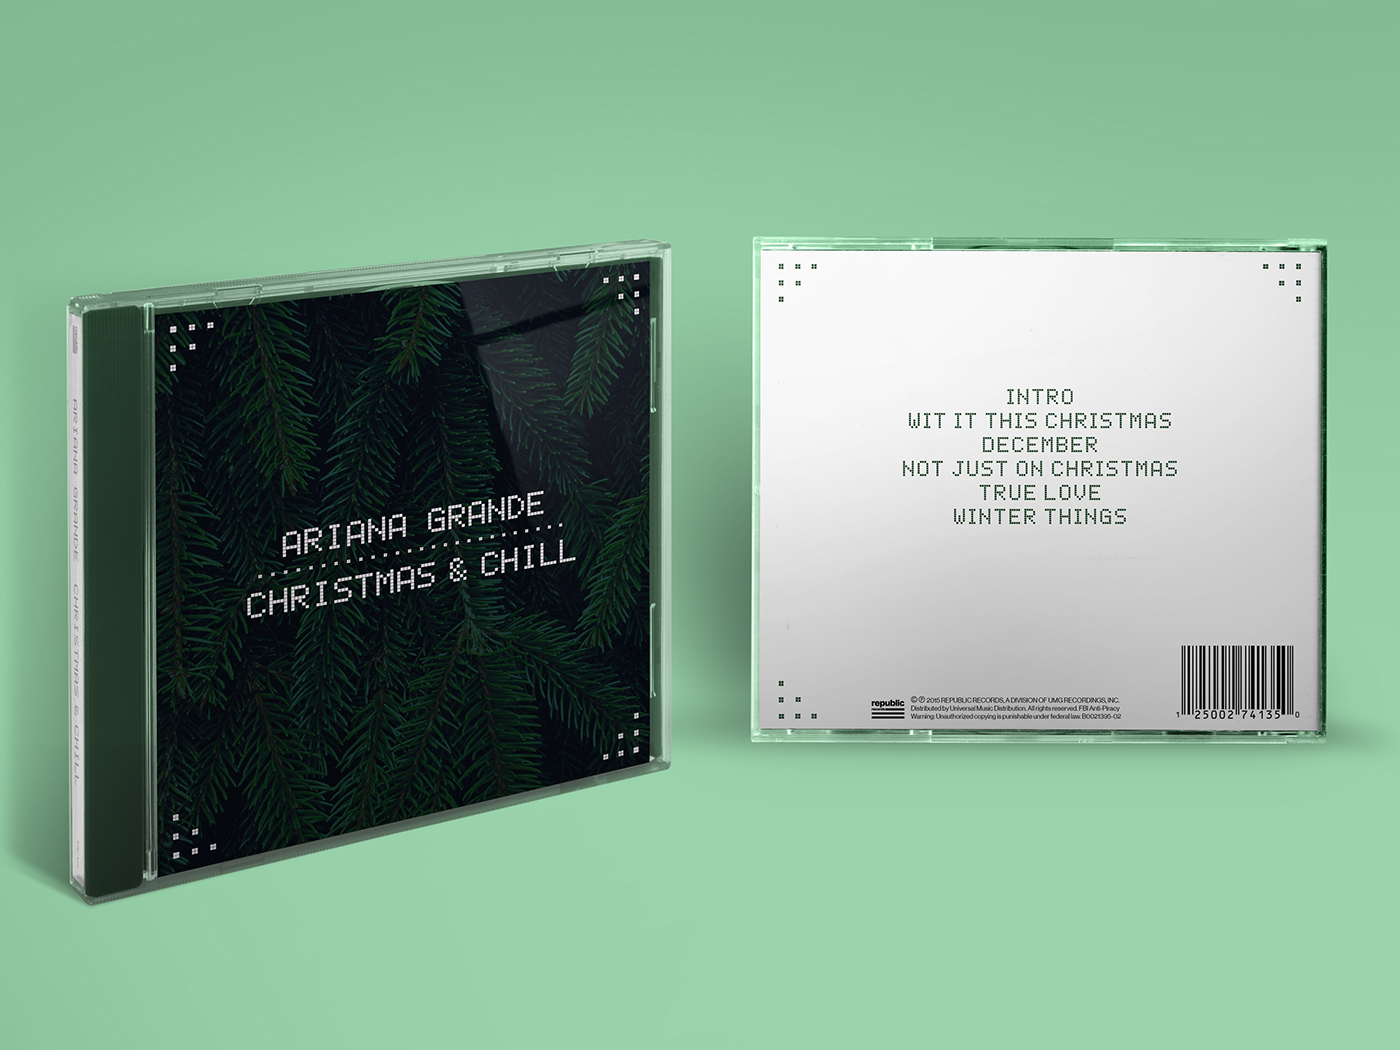 physical cd packaging design based on the official cover art of ariana grandes 2015 ep christmas chill - Christmas Chill